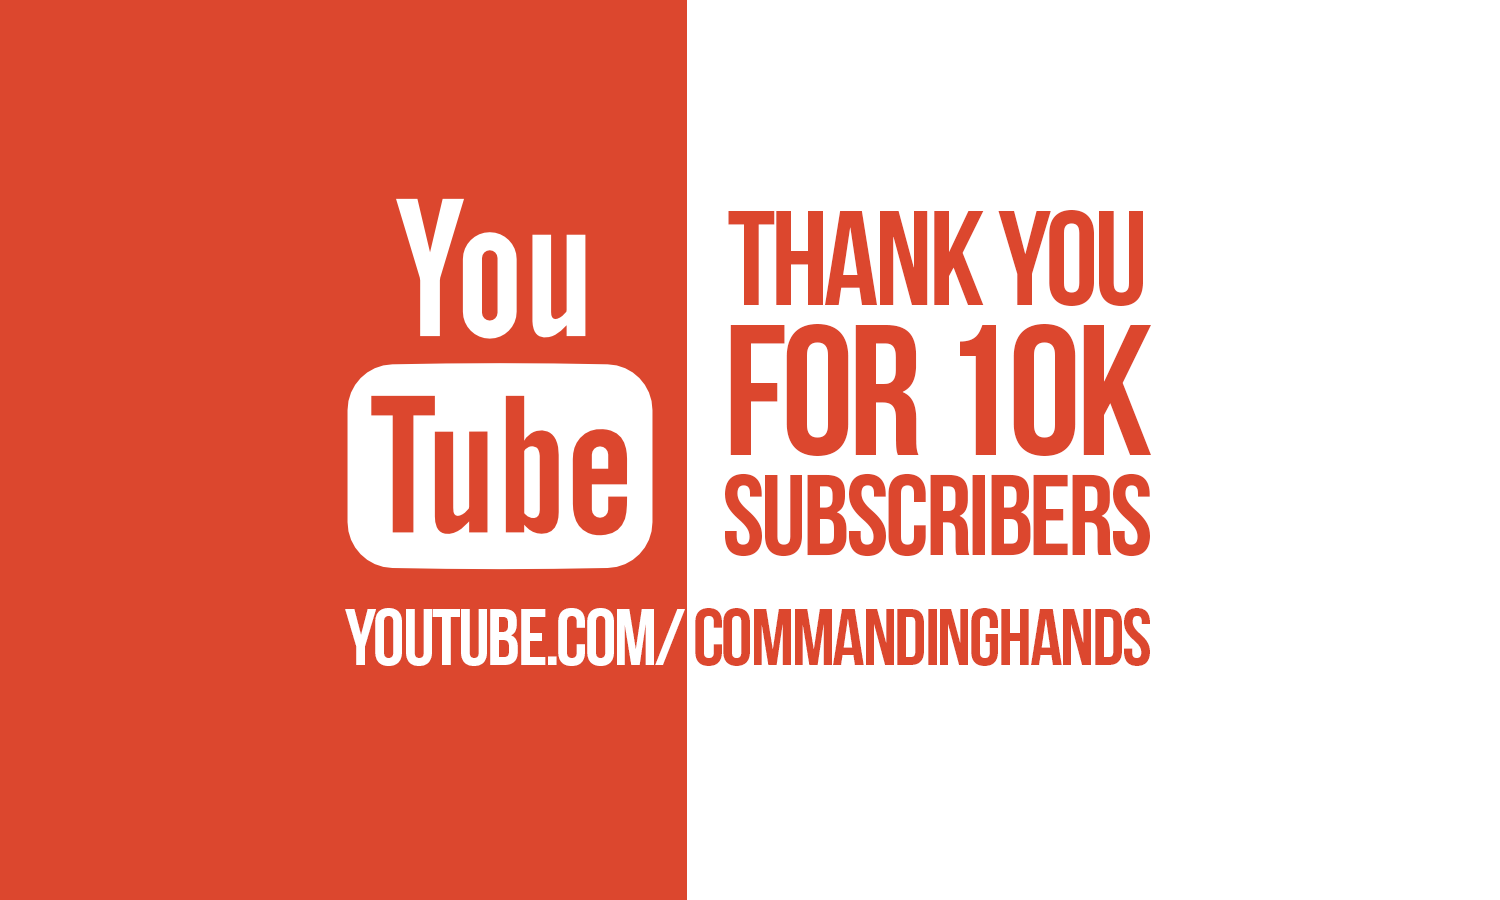 Thank you for 10k YouTube subscribers!